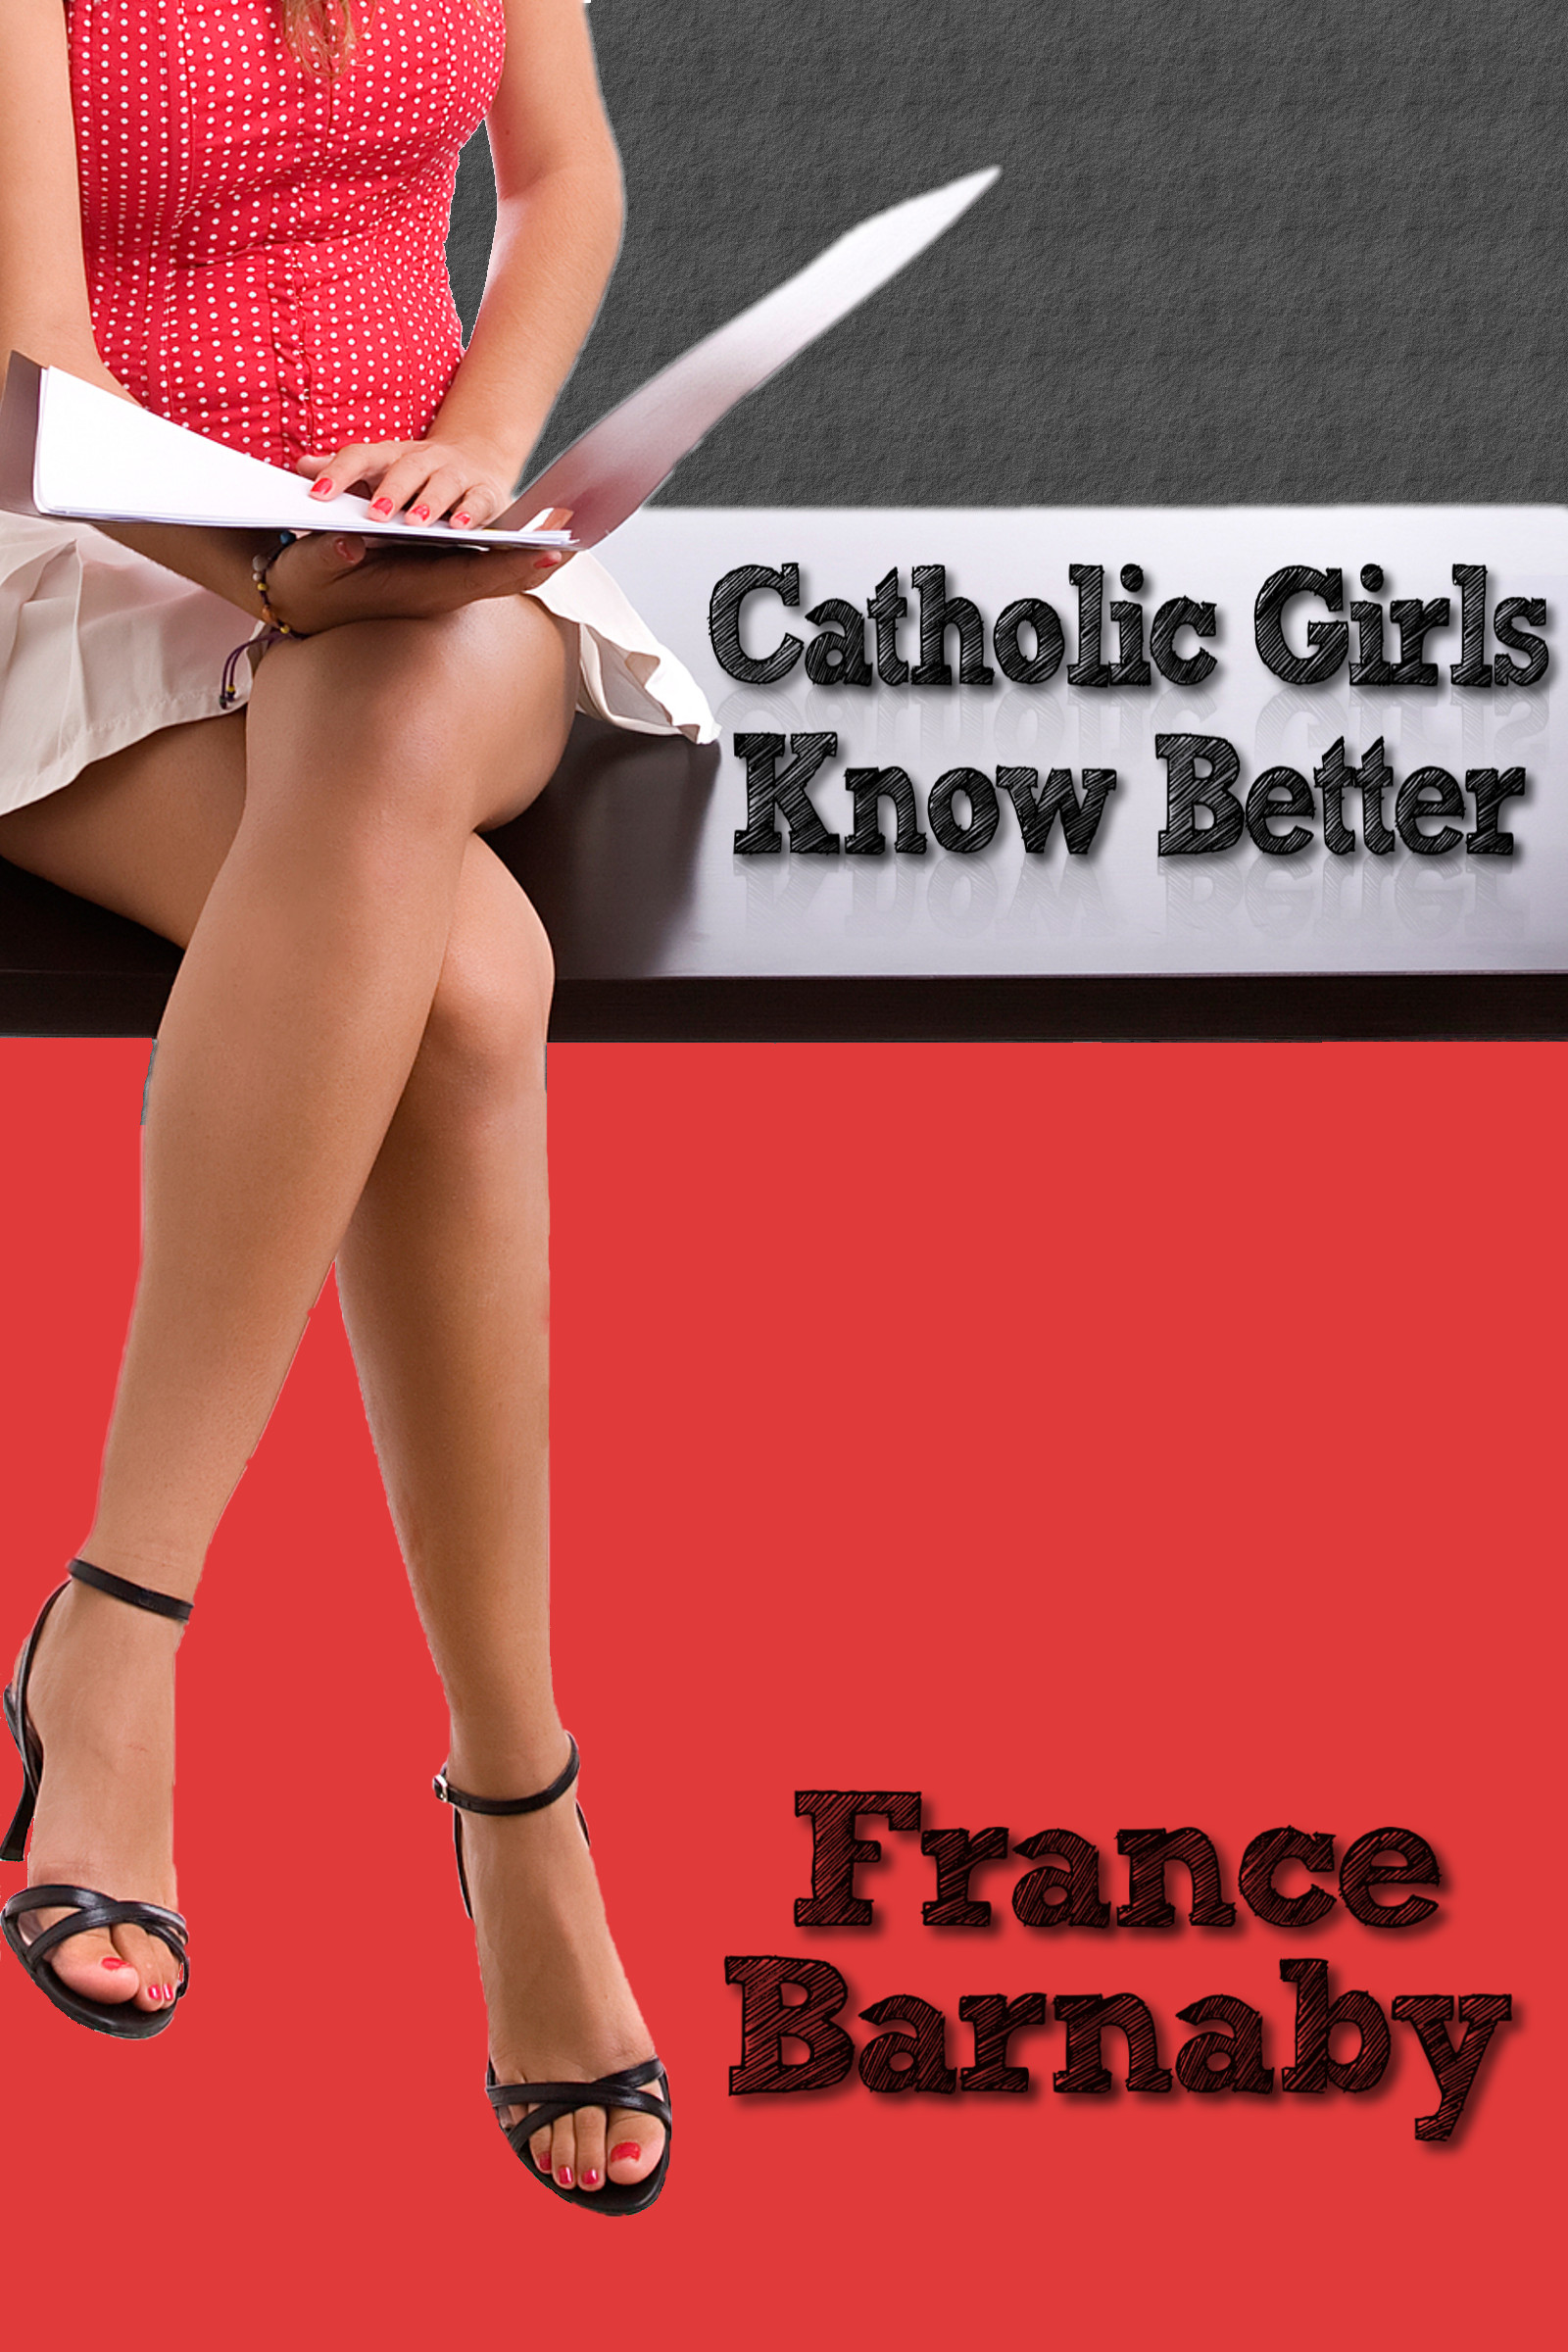 Catholic Girls Know Better